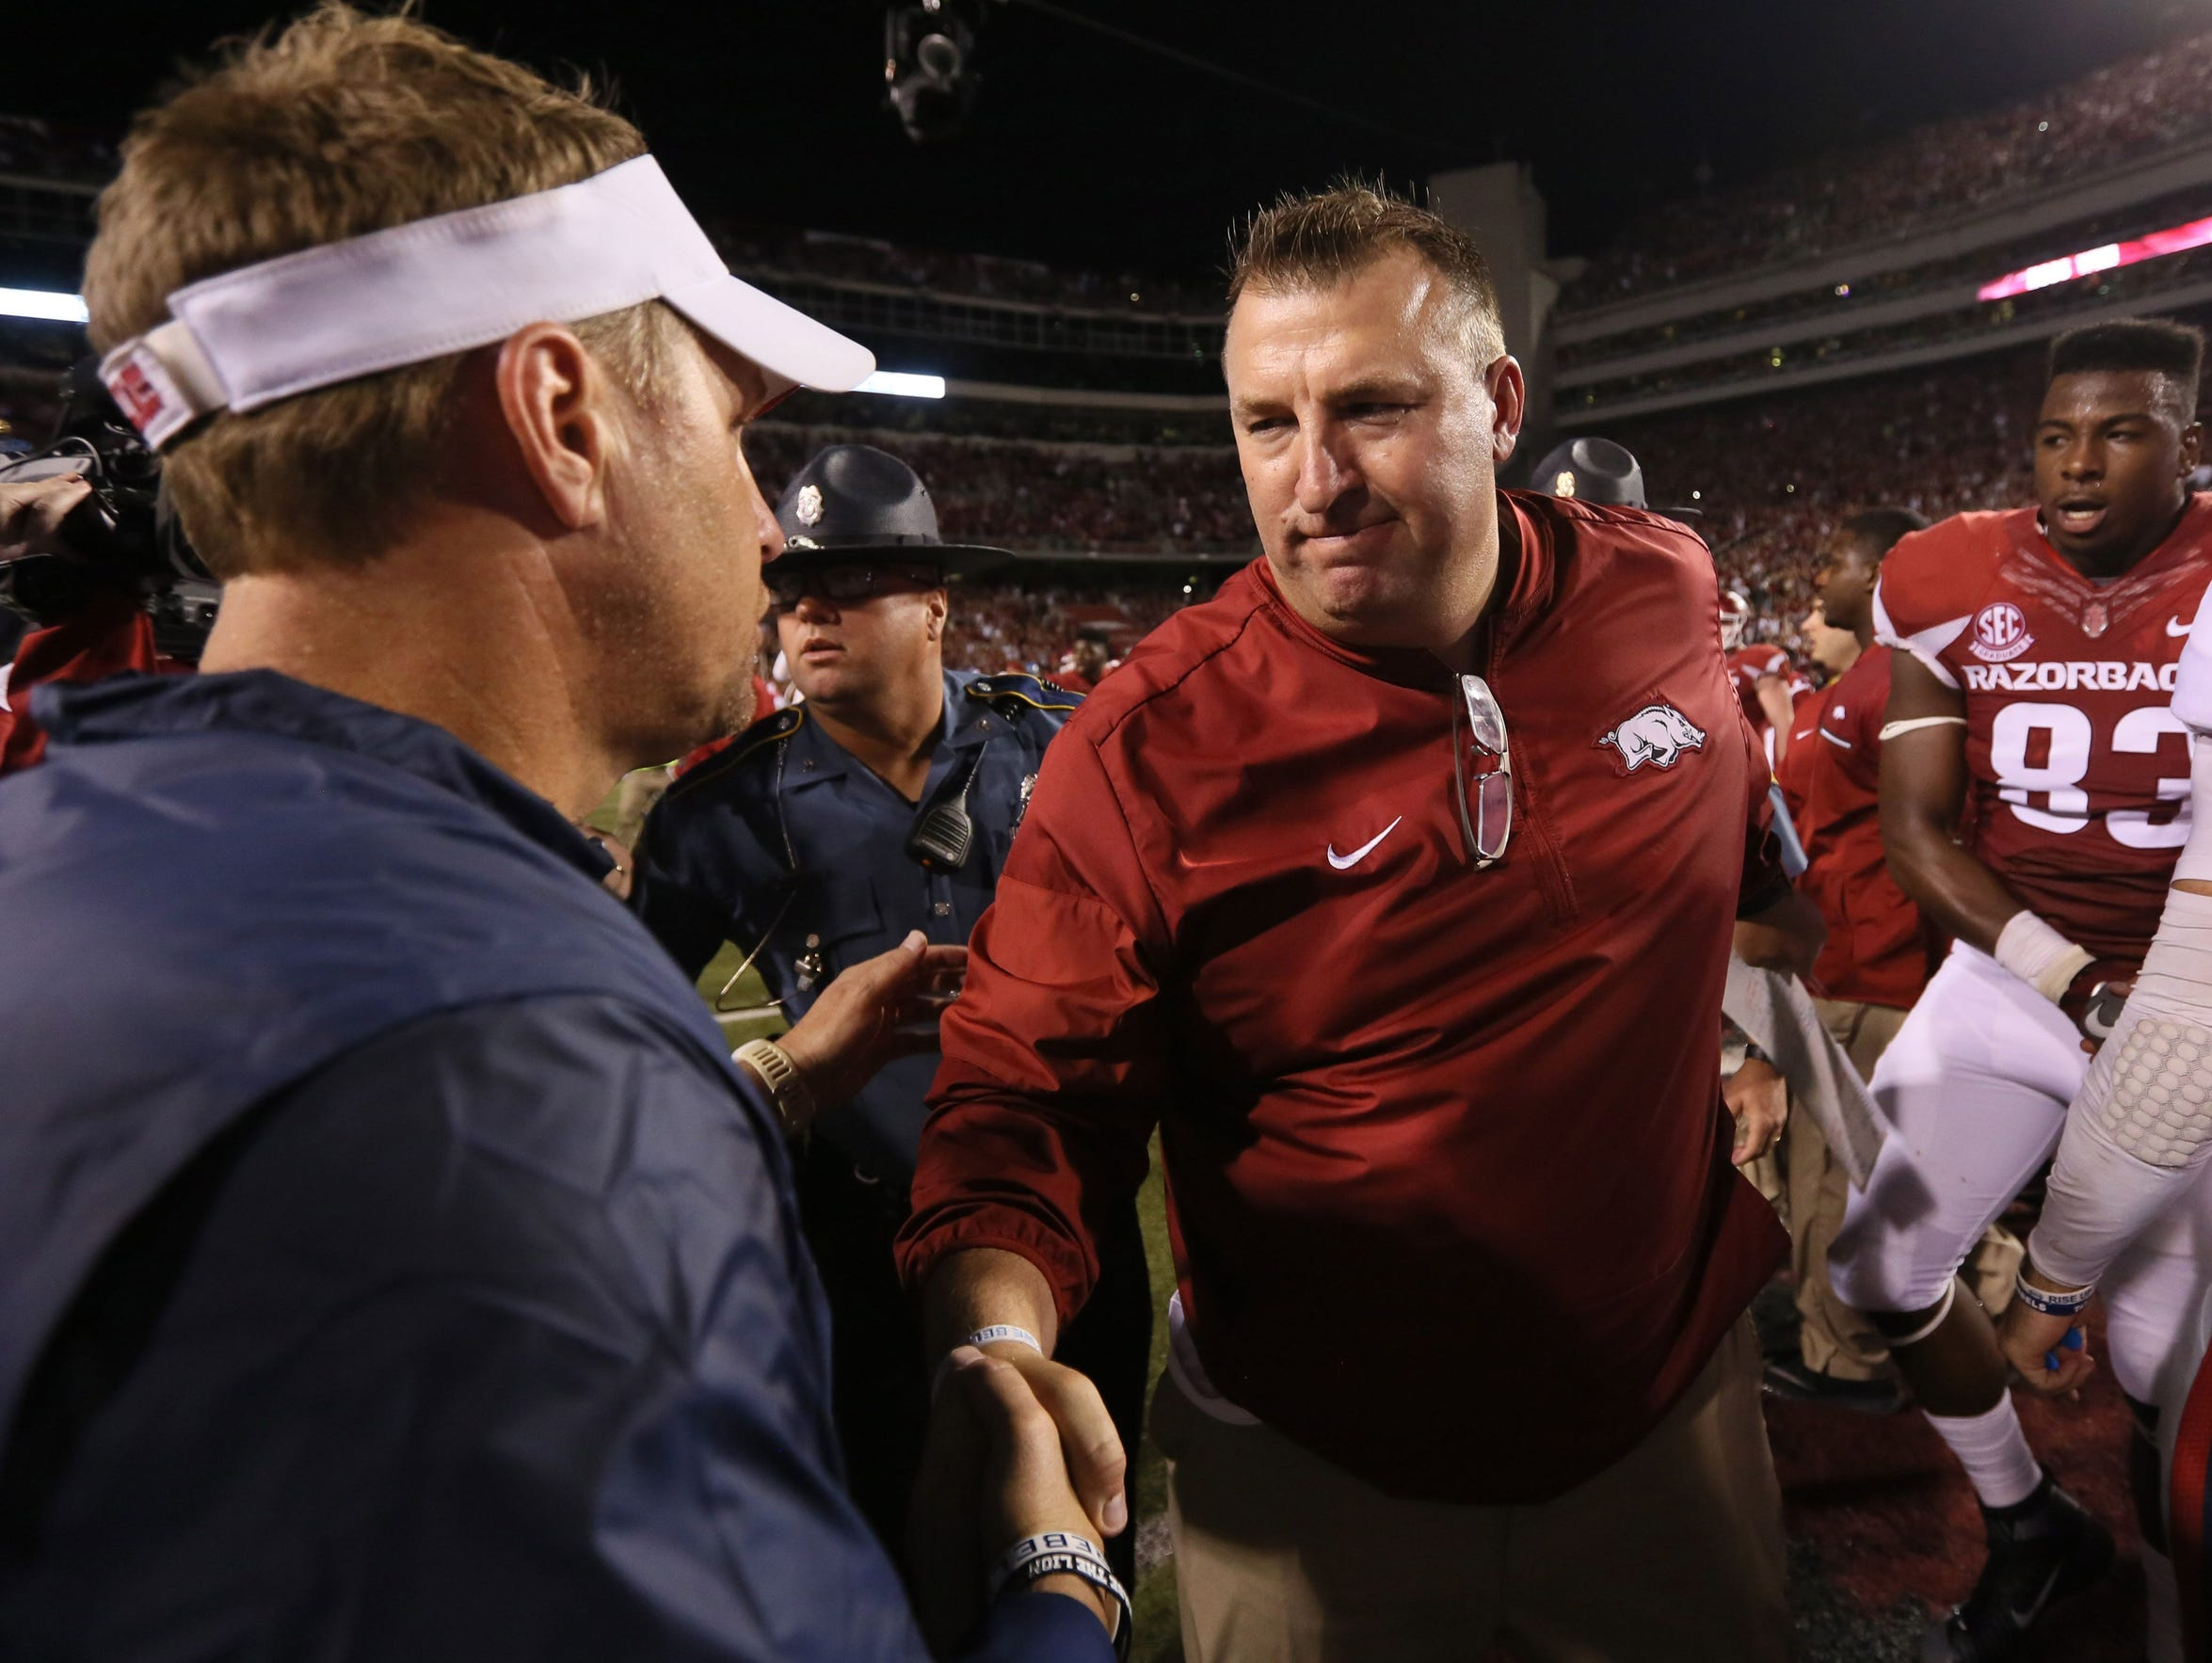 Arkansas Razorbacks head coach Bret Bielema shakes